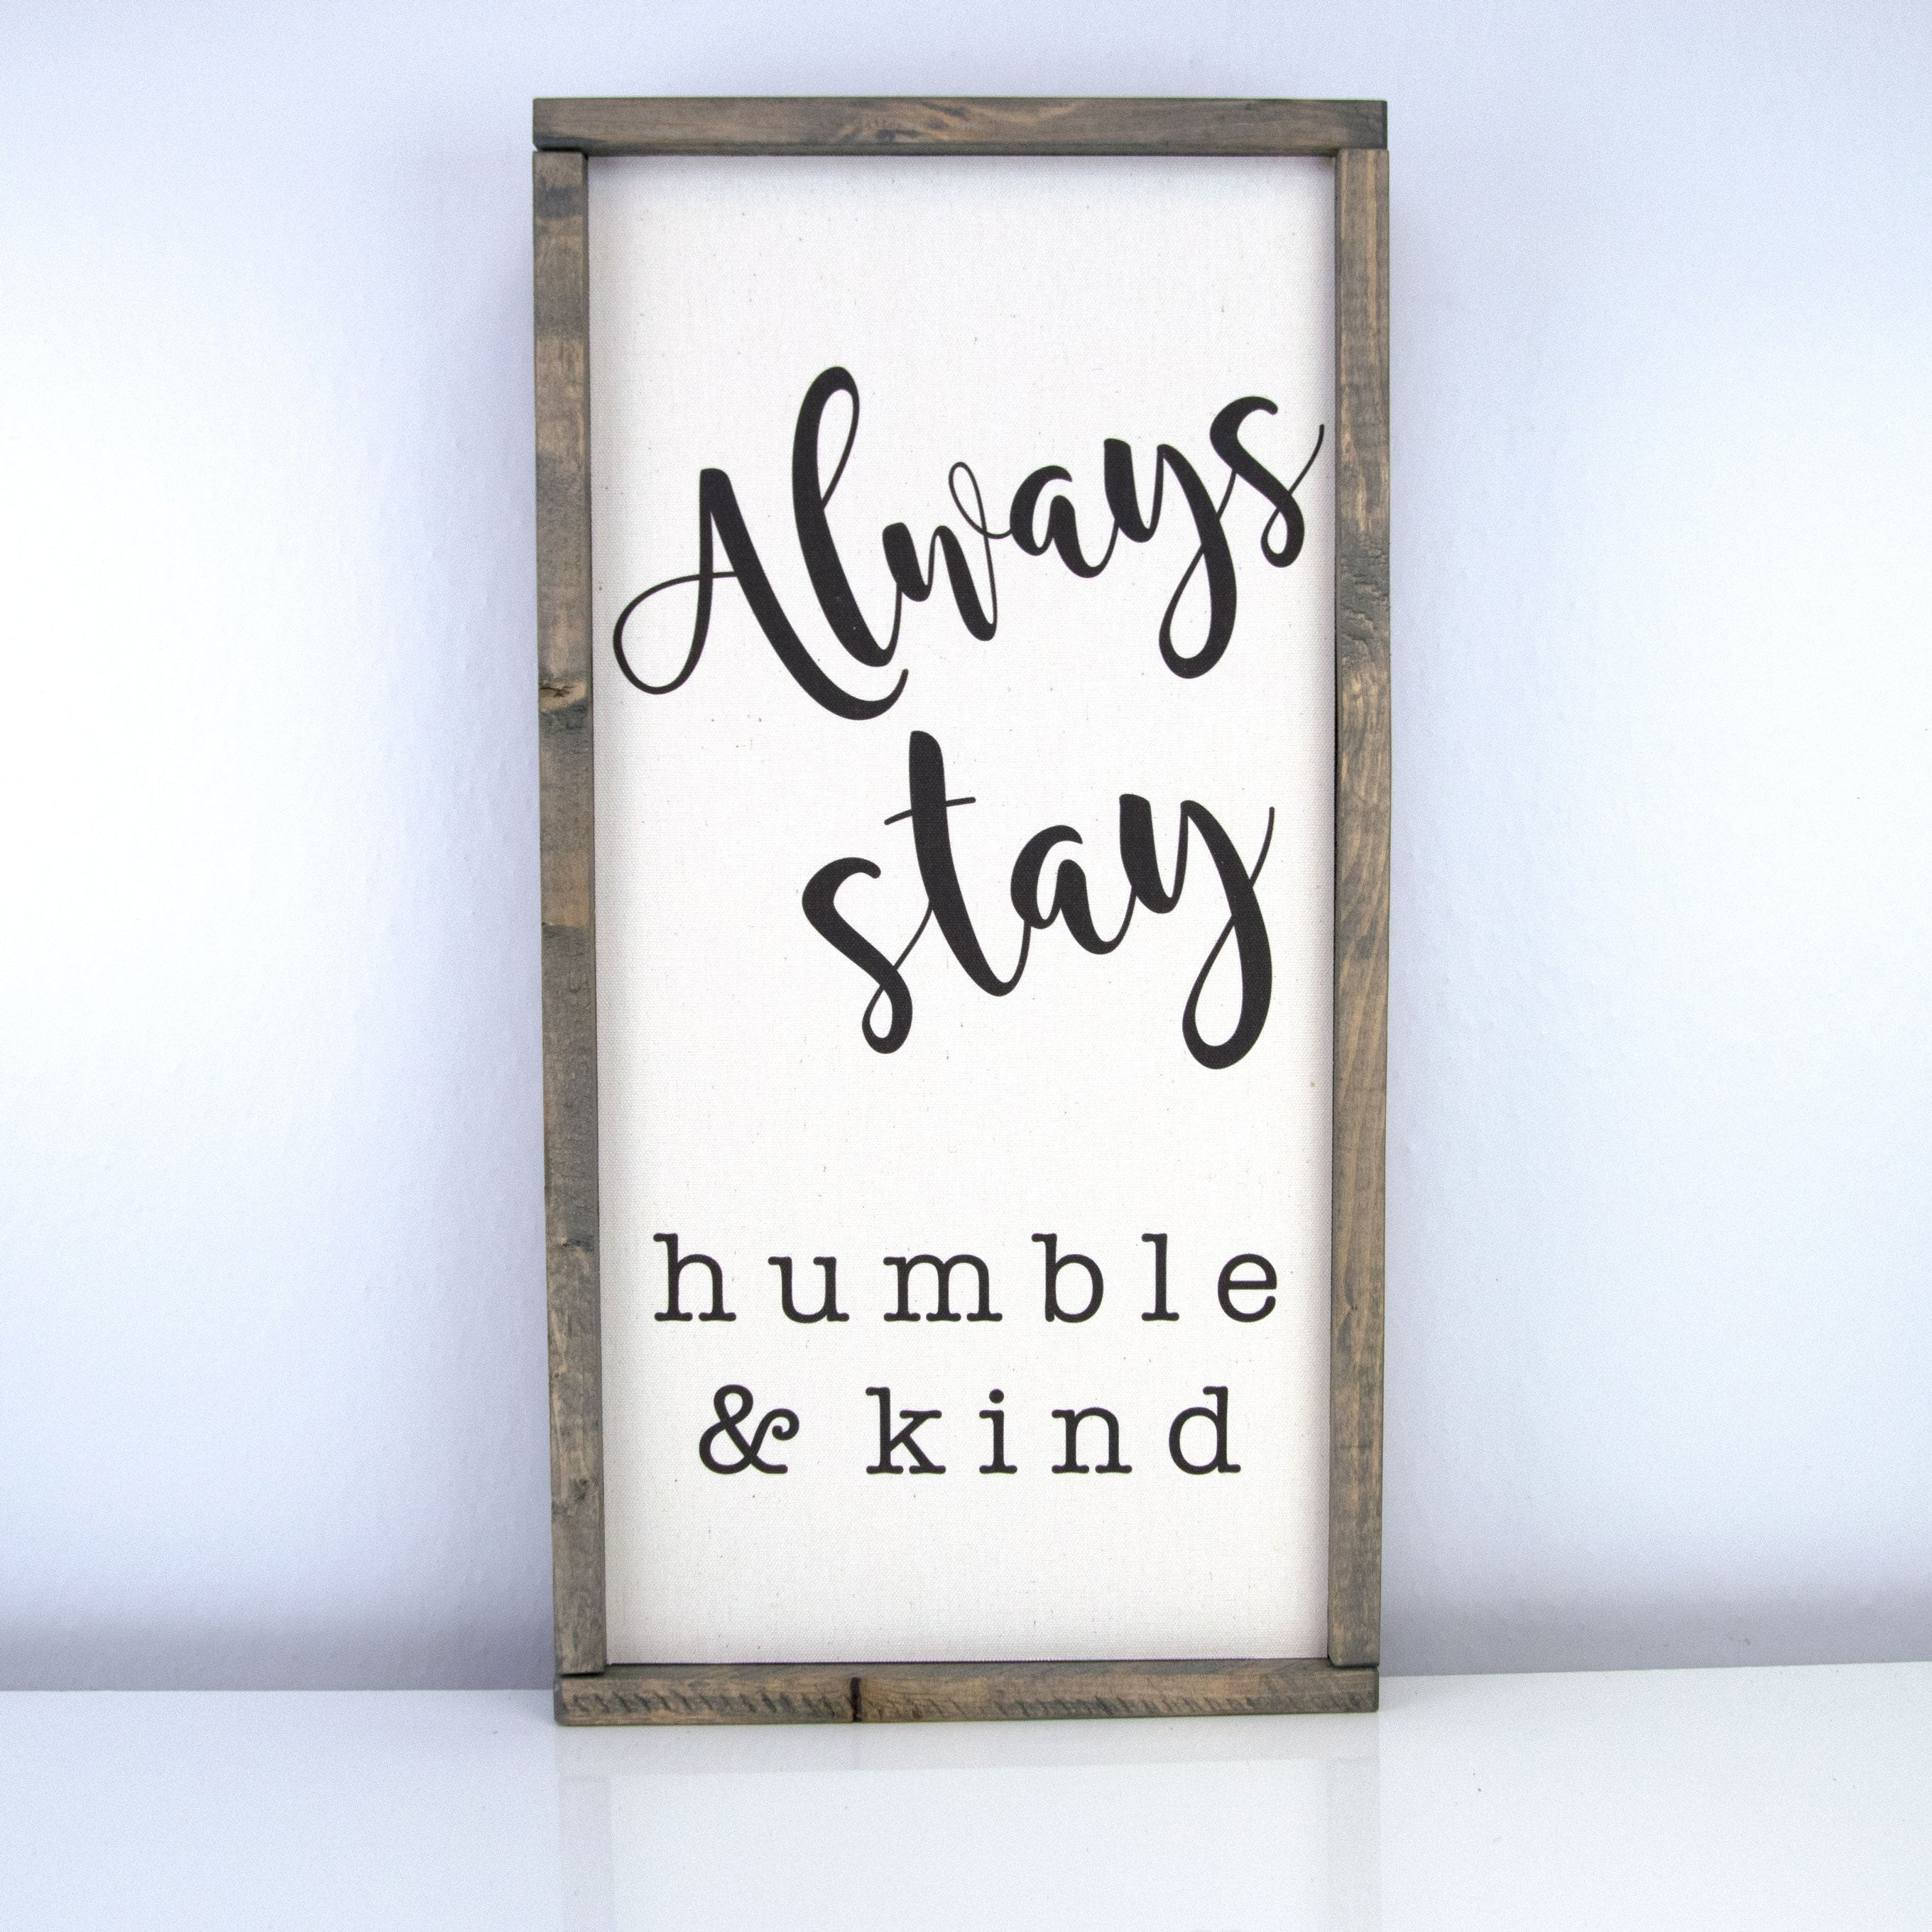 Humble & Kind | 10 x 20 Vintage